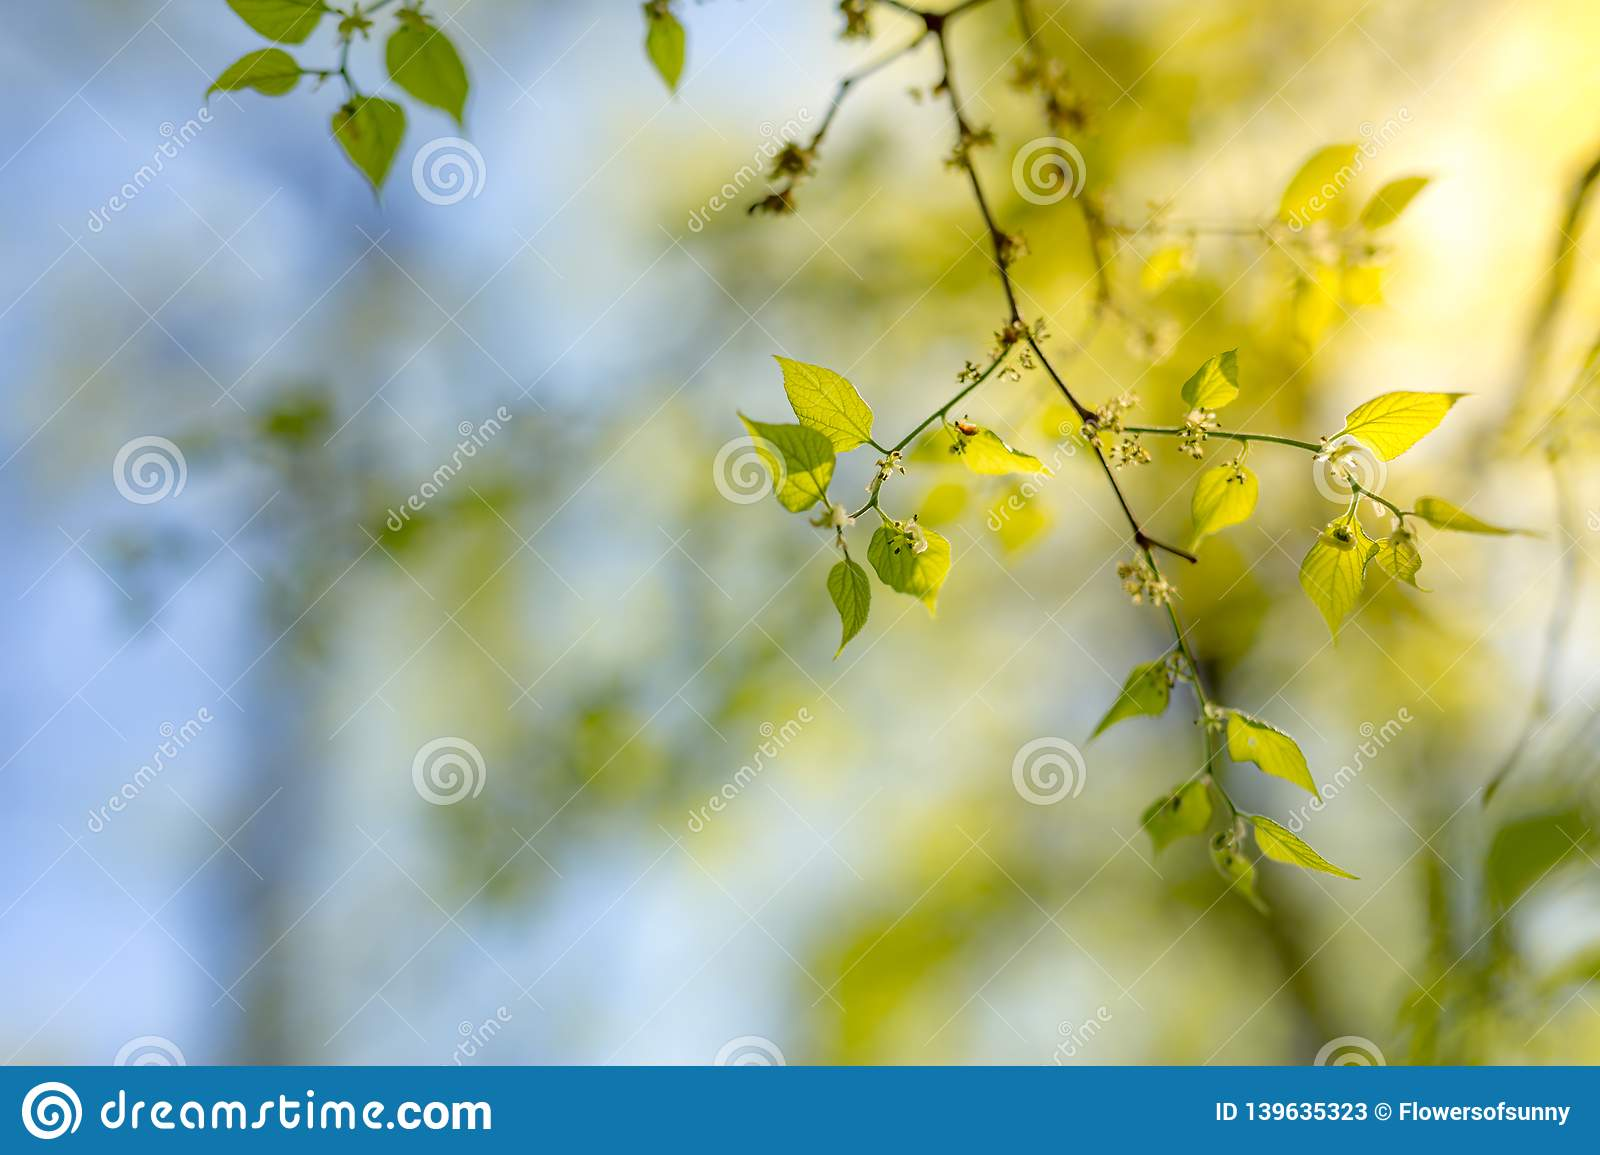 Fresh And Green Leaves Nature Background Freshness And New